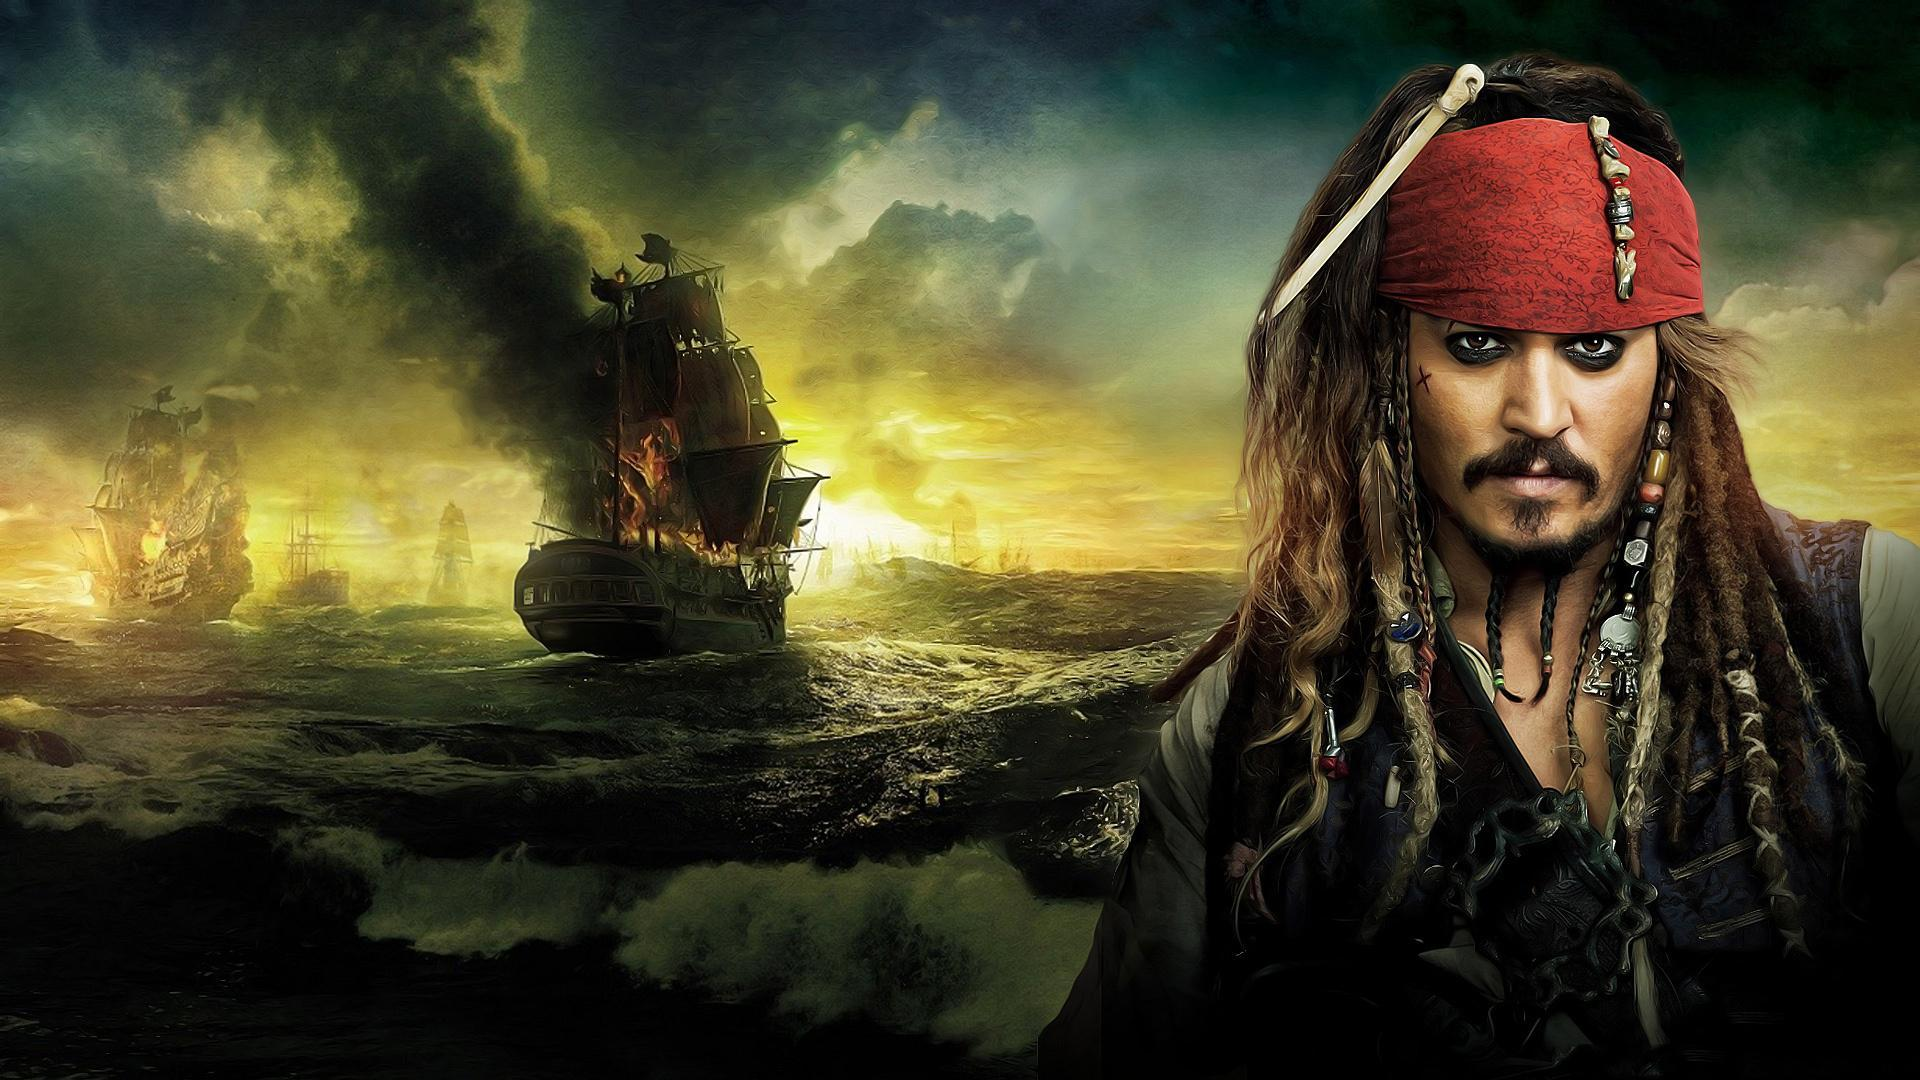 Captain Jack Sparrow Running Wallpaper 10904 | PIXZONE